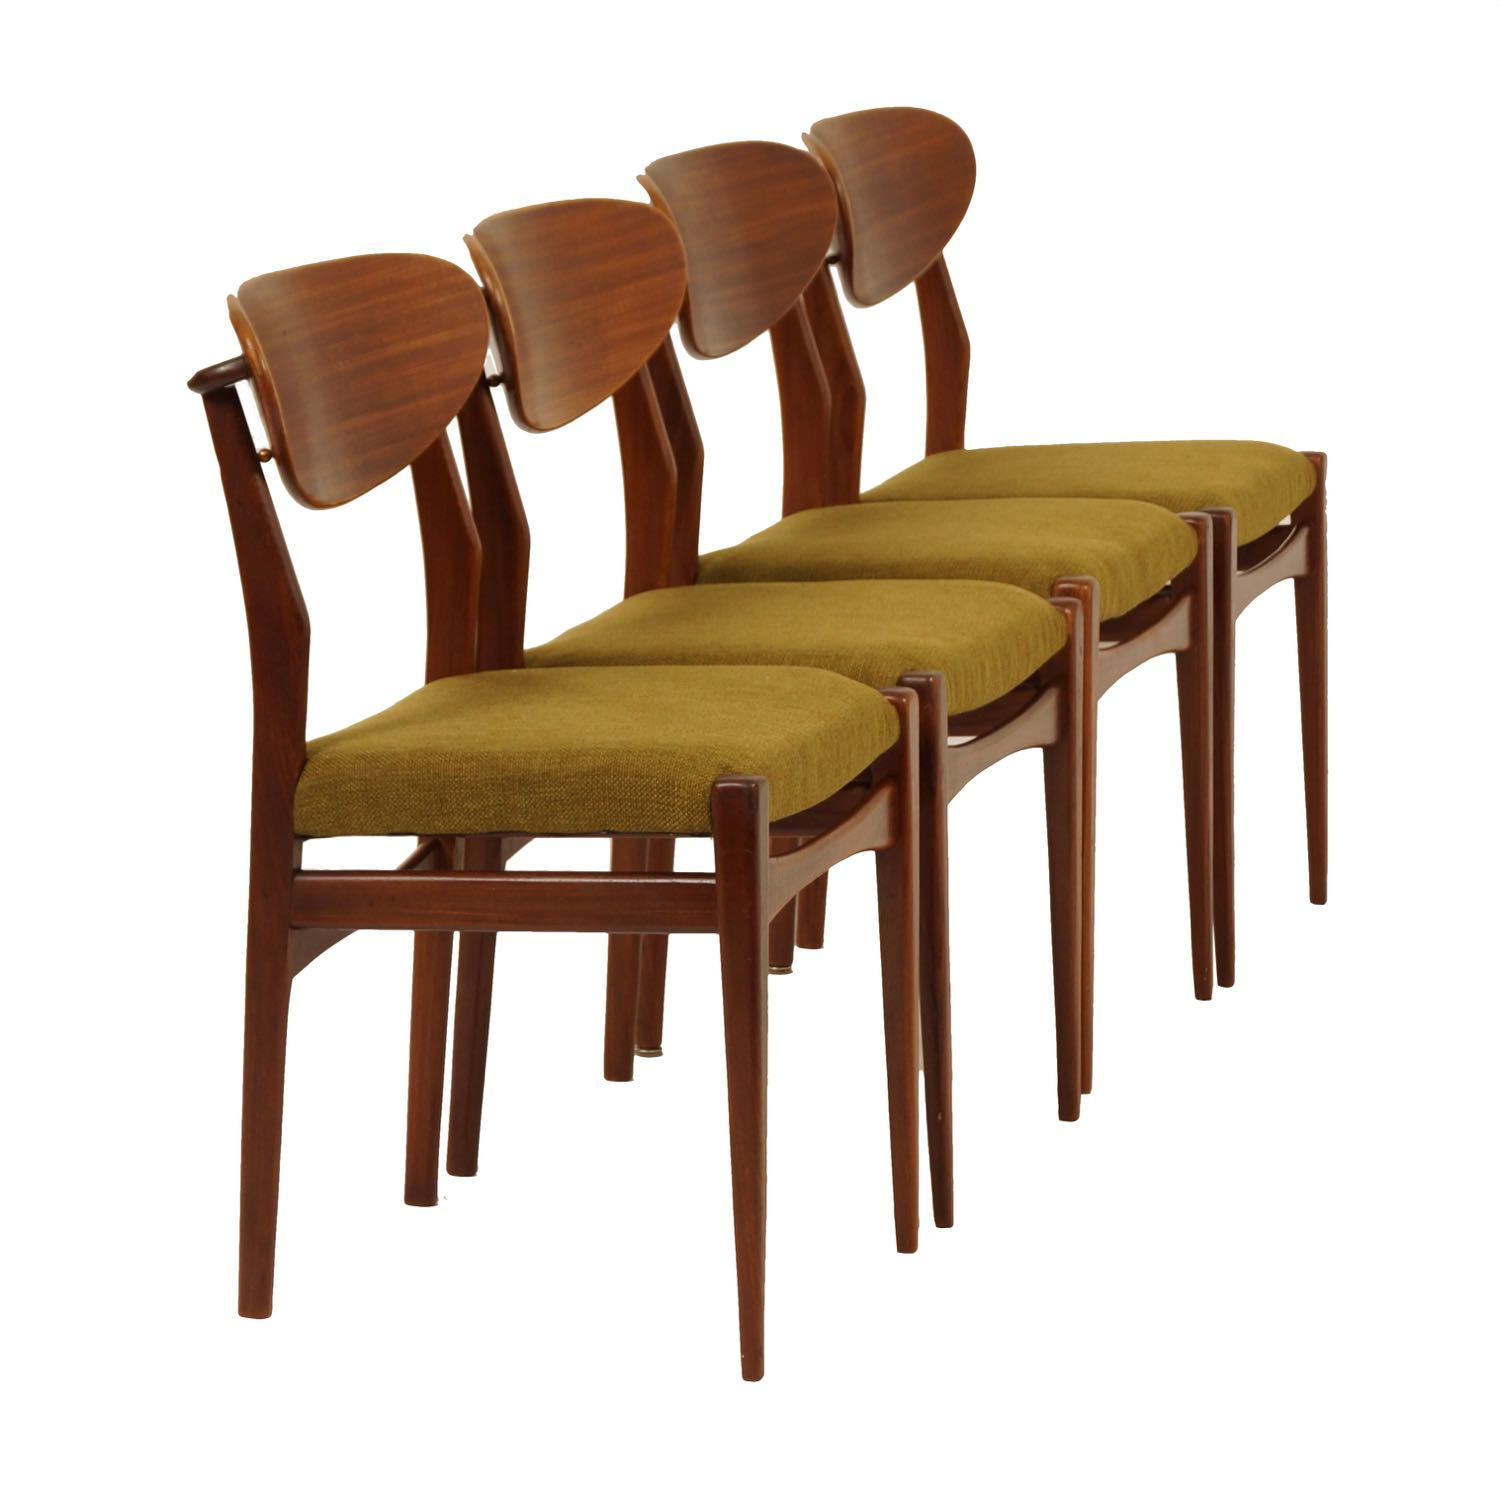 Dining Chairs by Louis van Teeffelen for Wébé, 1960s – Set of 4 | Mid Century Design